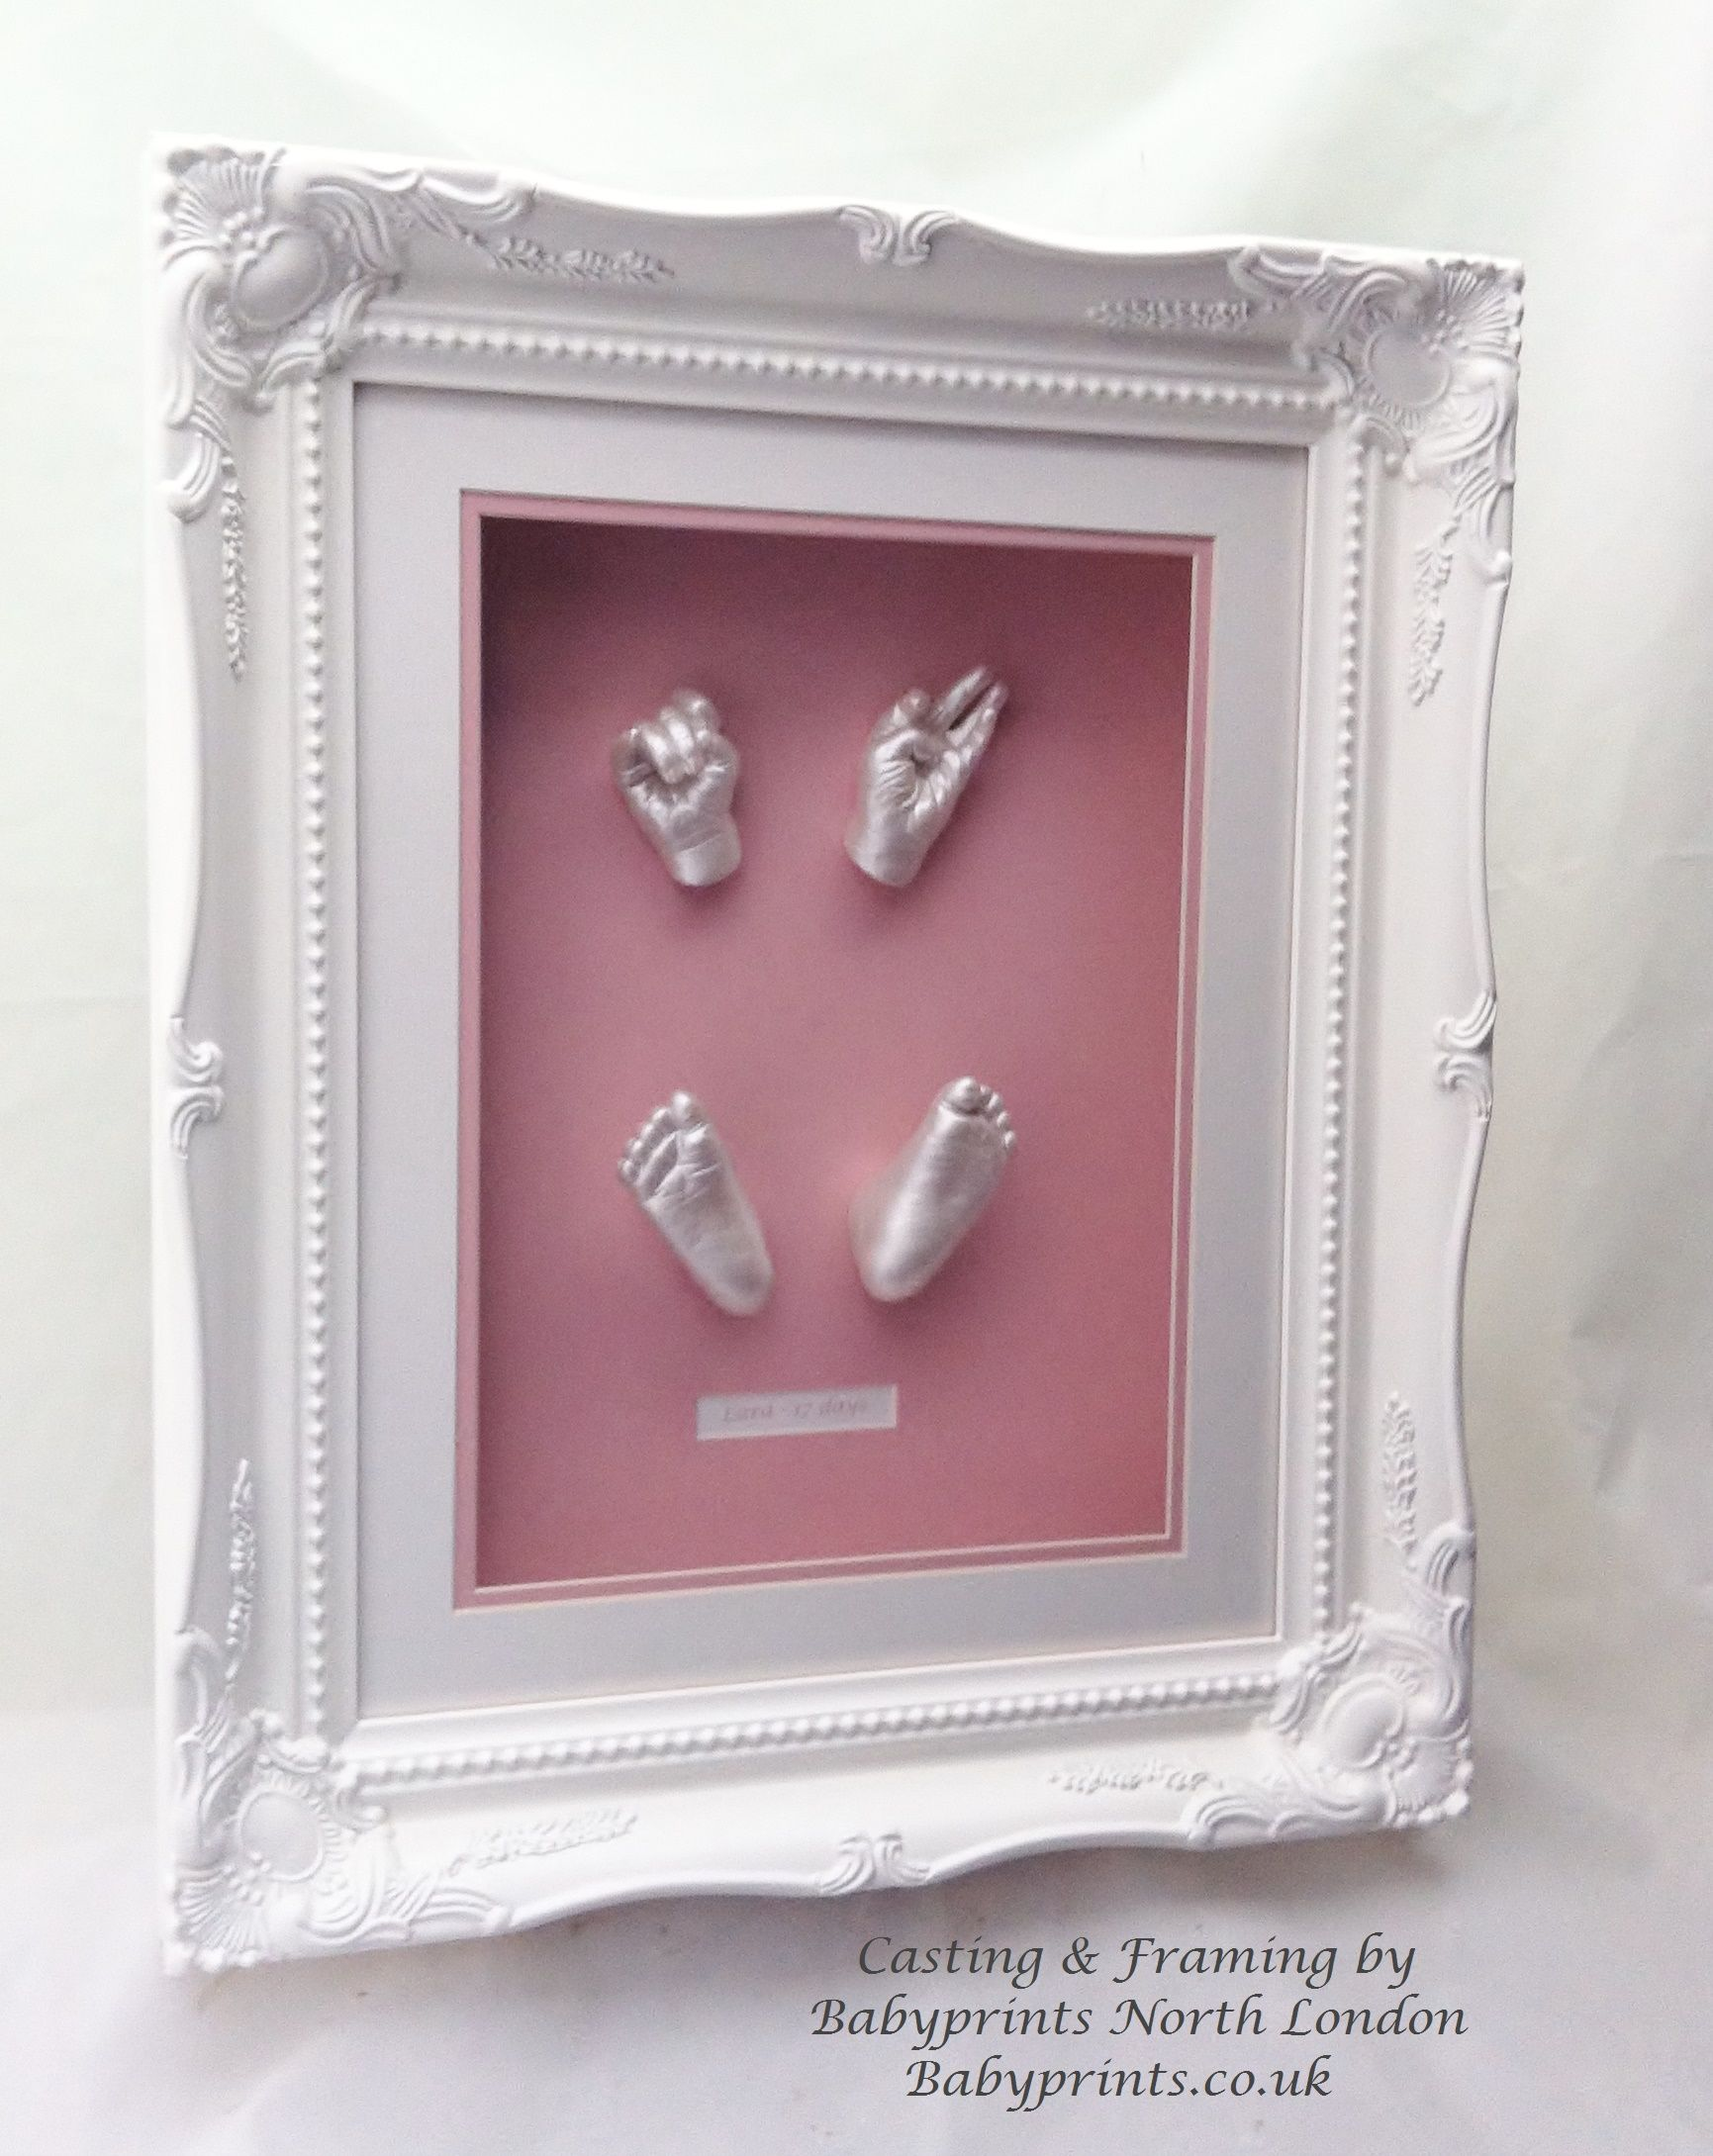 Classical swept frames are our latest style of frame tiny baby classical swept frames are our latest style of frame tiny baby hand and feet casts jeuxipadfo Images